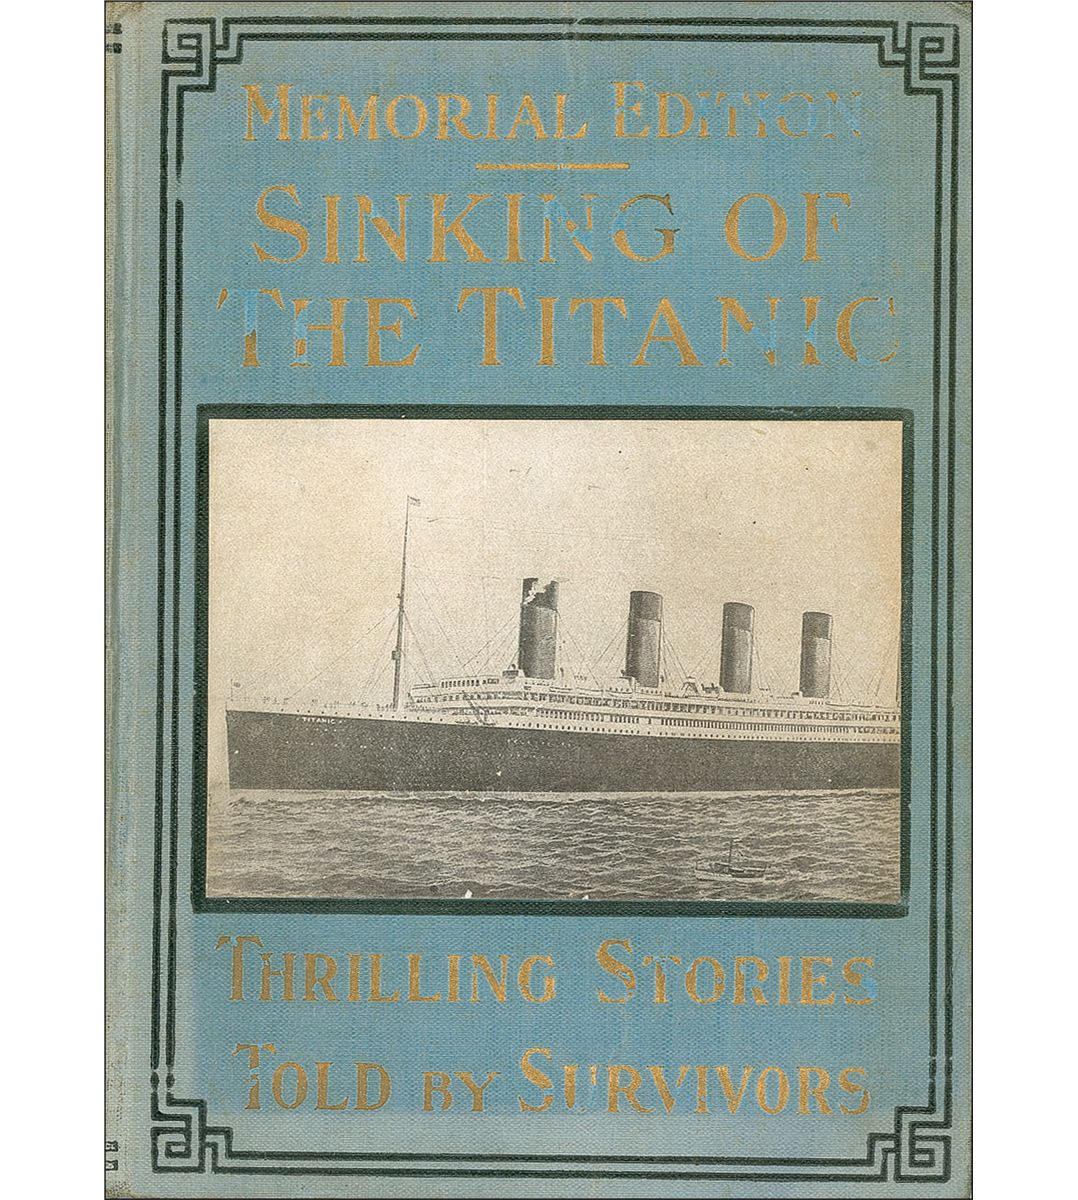 a description of the sinking of the titanic Titanic - the ship magnificent is a comprehensive book about all aspects of the actual ship itselfit does not delve into accounts of her passengers, nor does it detail the ship's sinking.